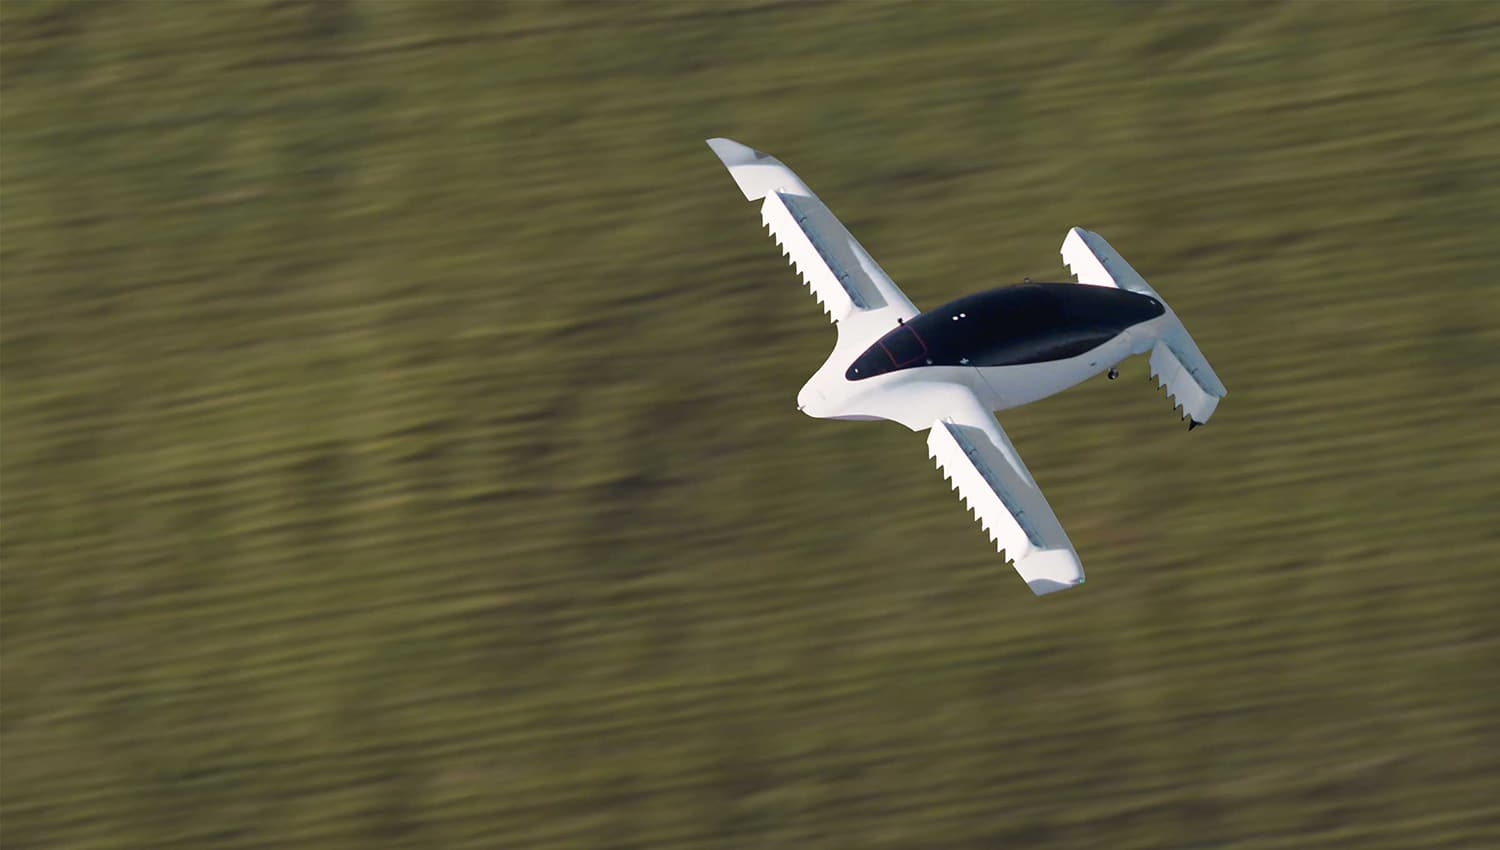 Lilium Jet air taxi reaches a top speed of 100 km/h